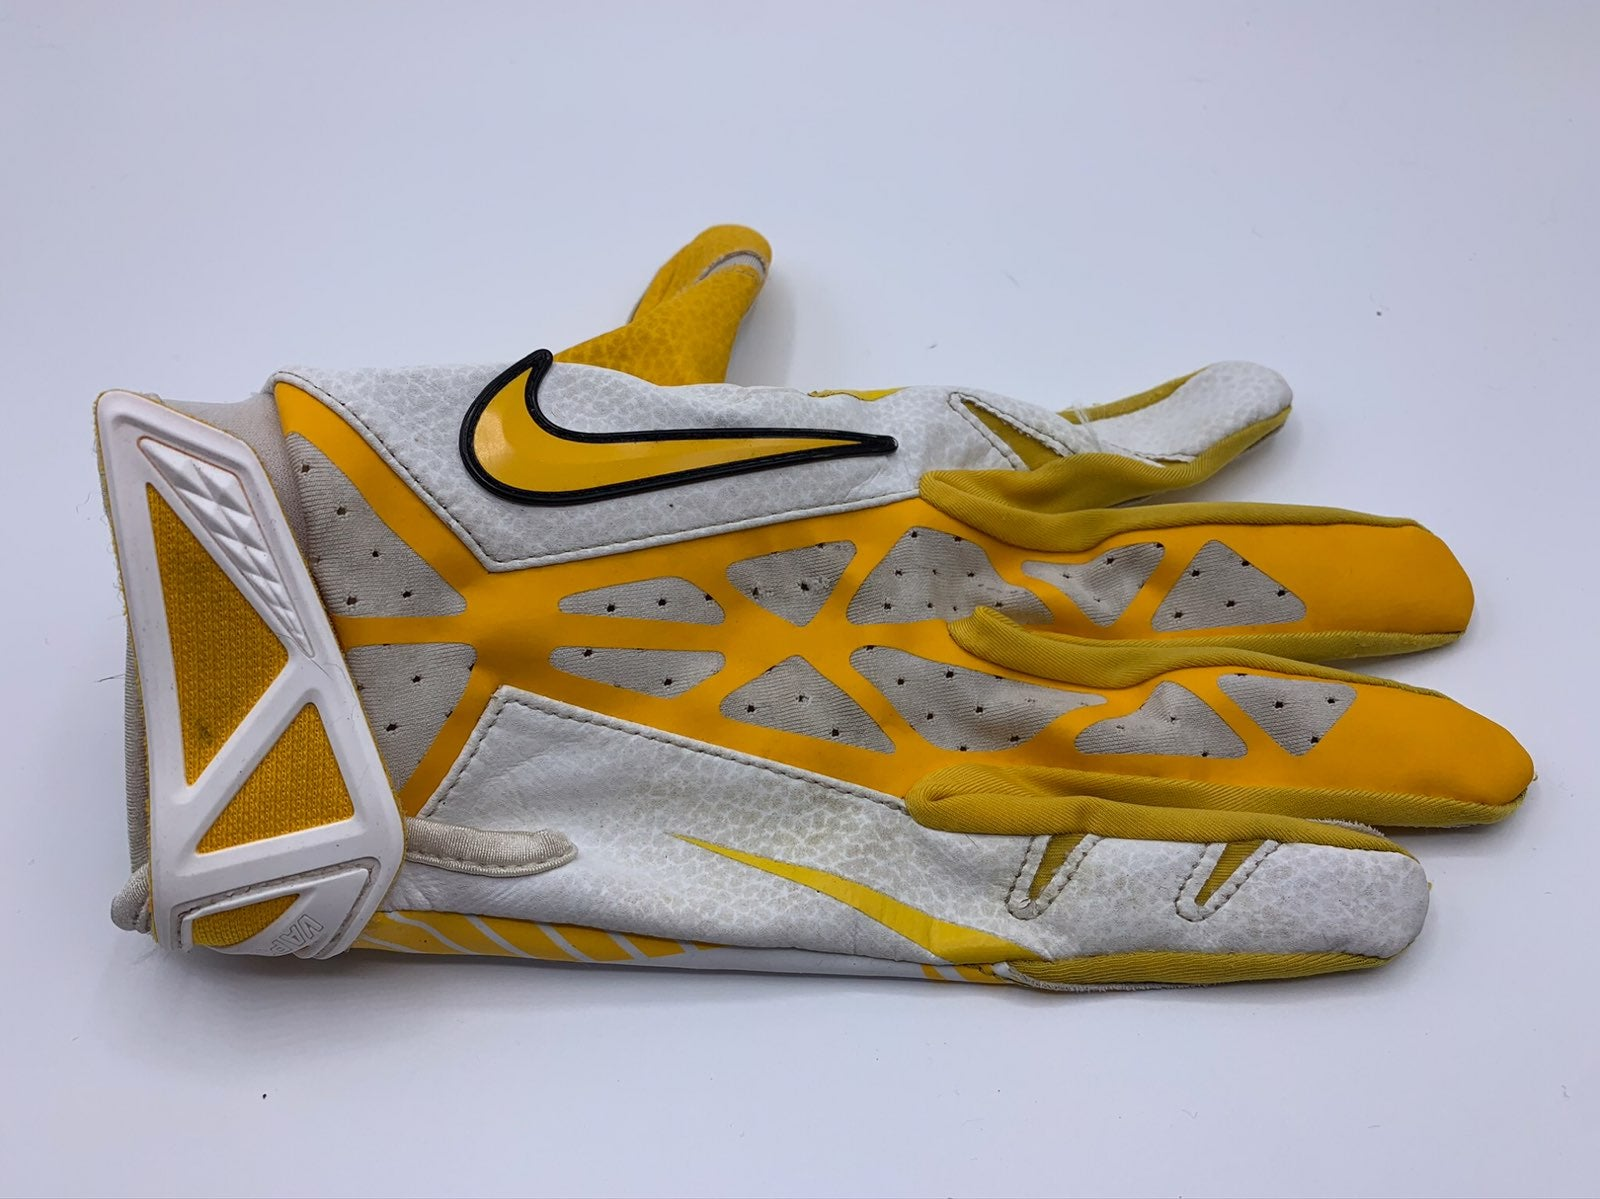 Nike Yellow/Gold/White Football Glove